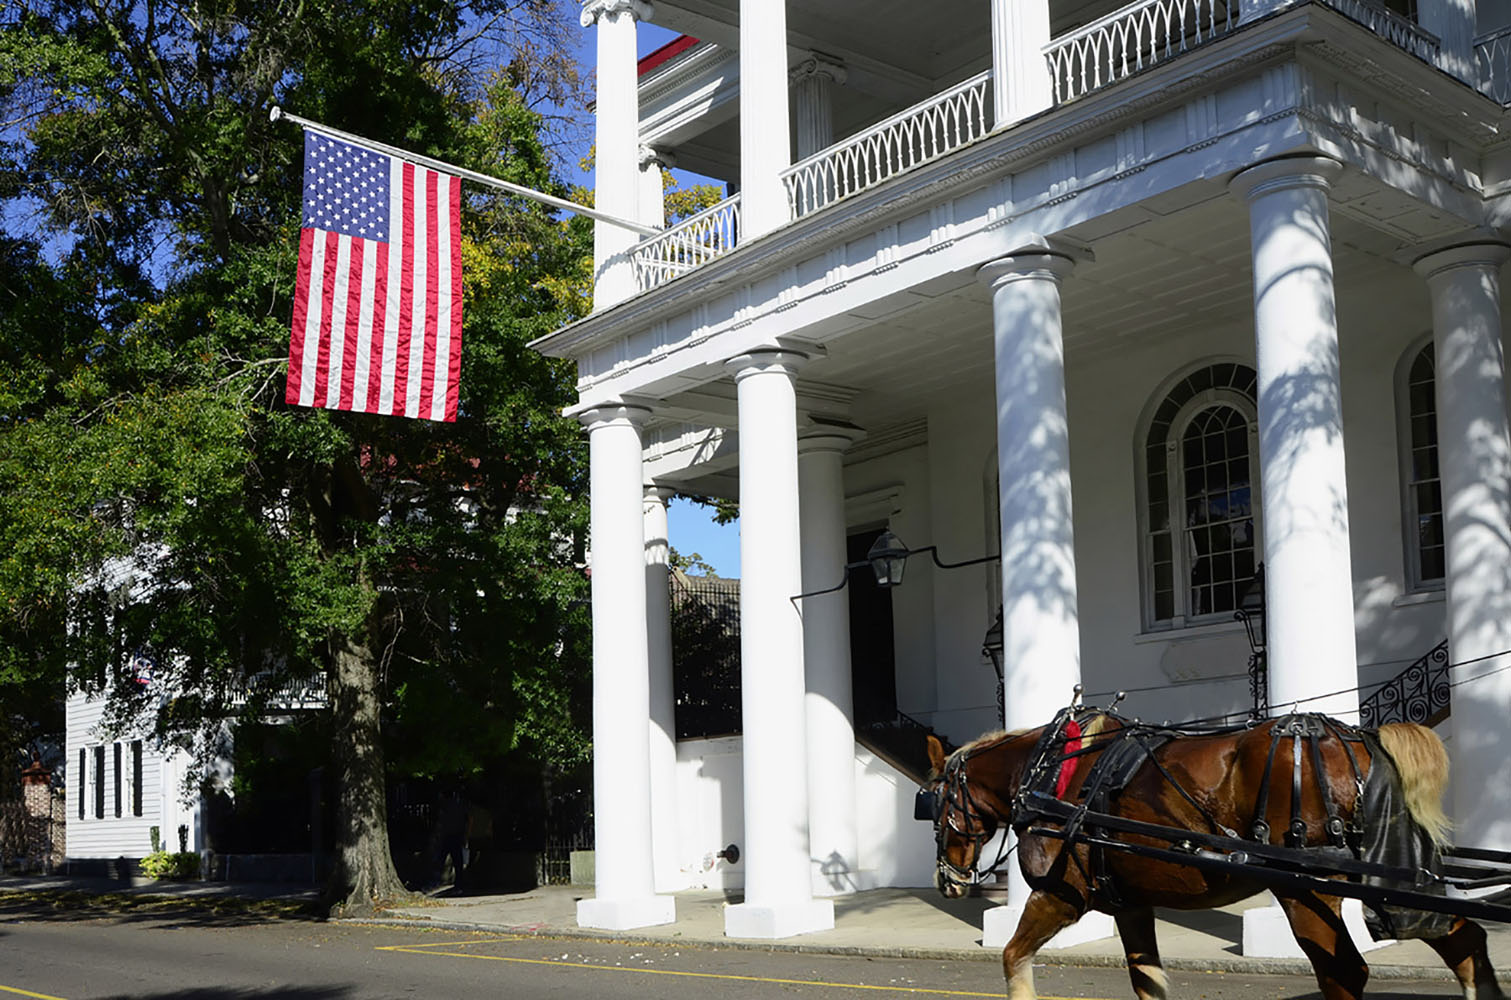 A horse-drawn carriage makes its way through Charleston, South Carolina